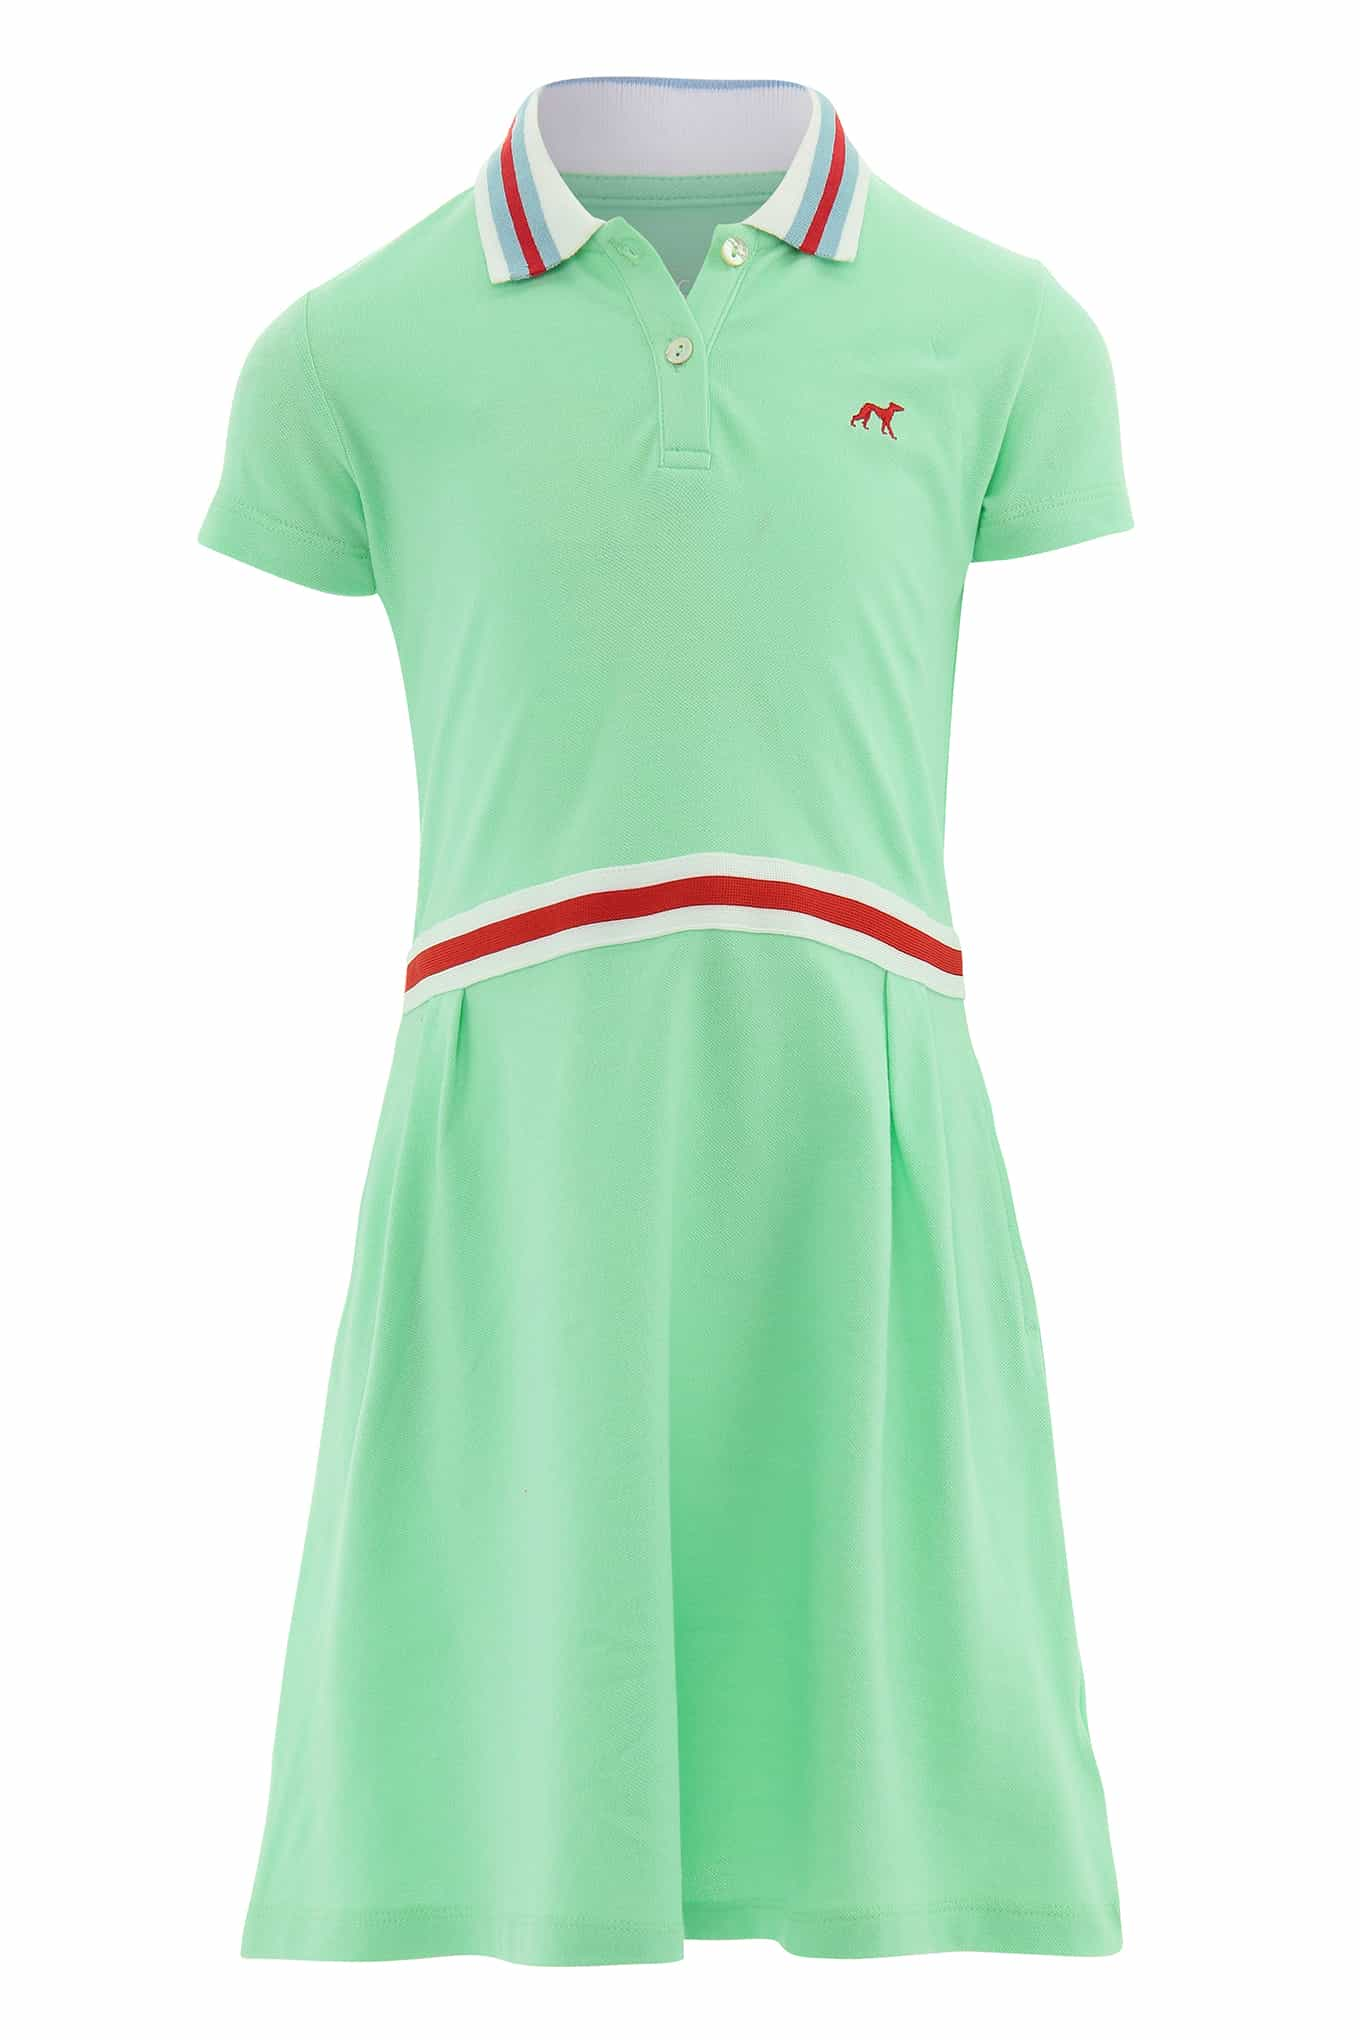 Dress Piquet Mint Sport Girl